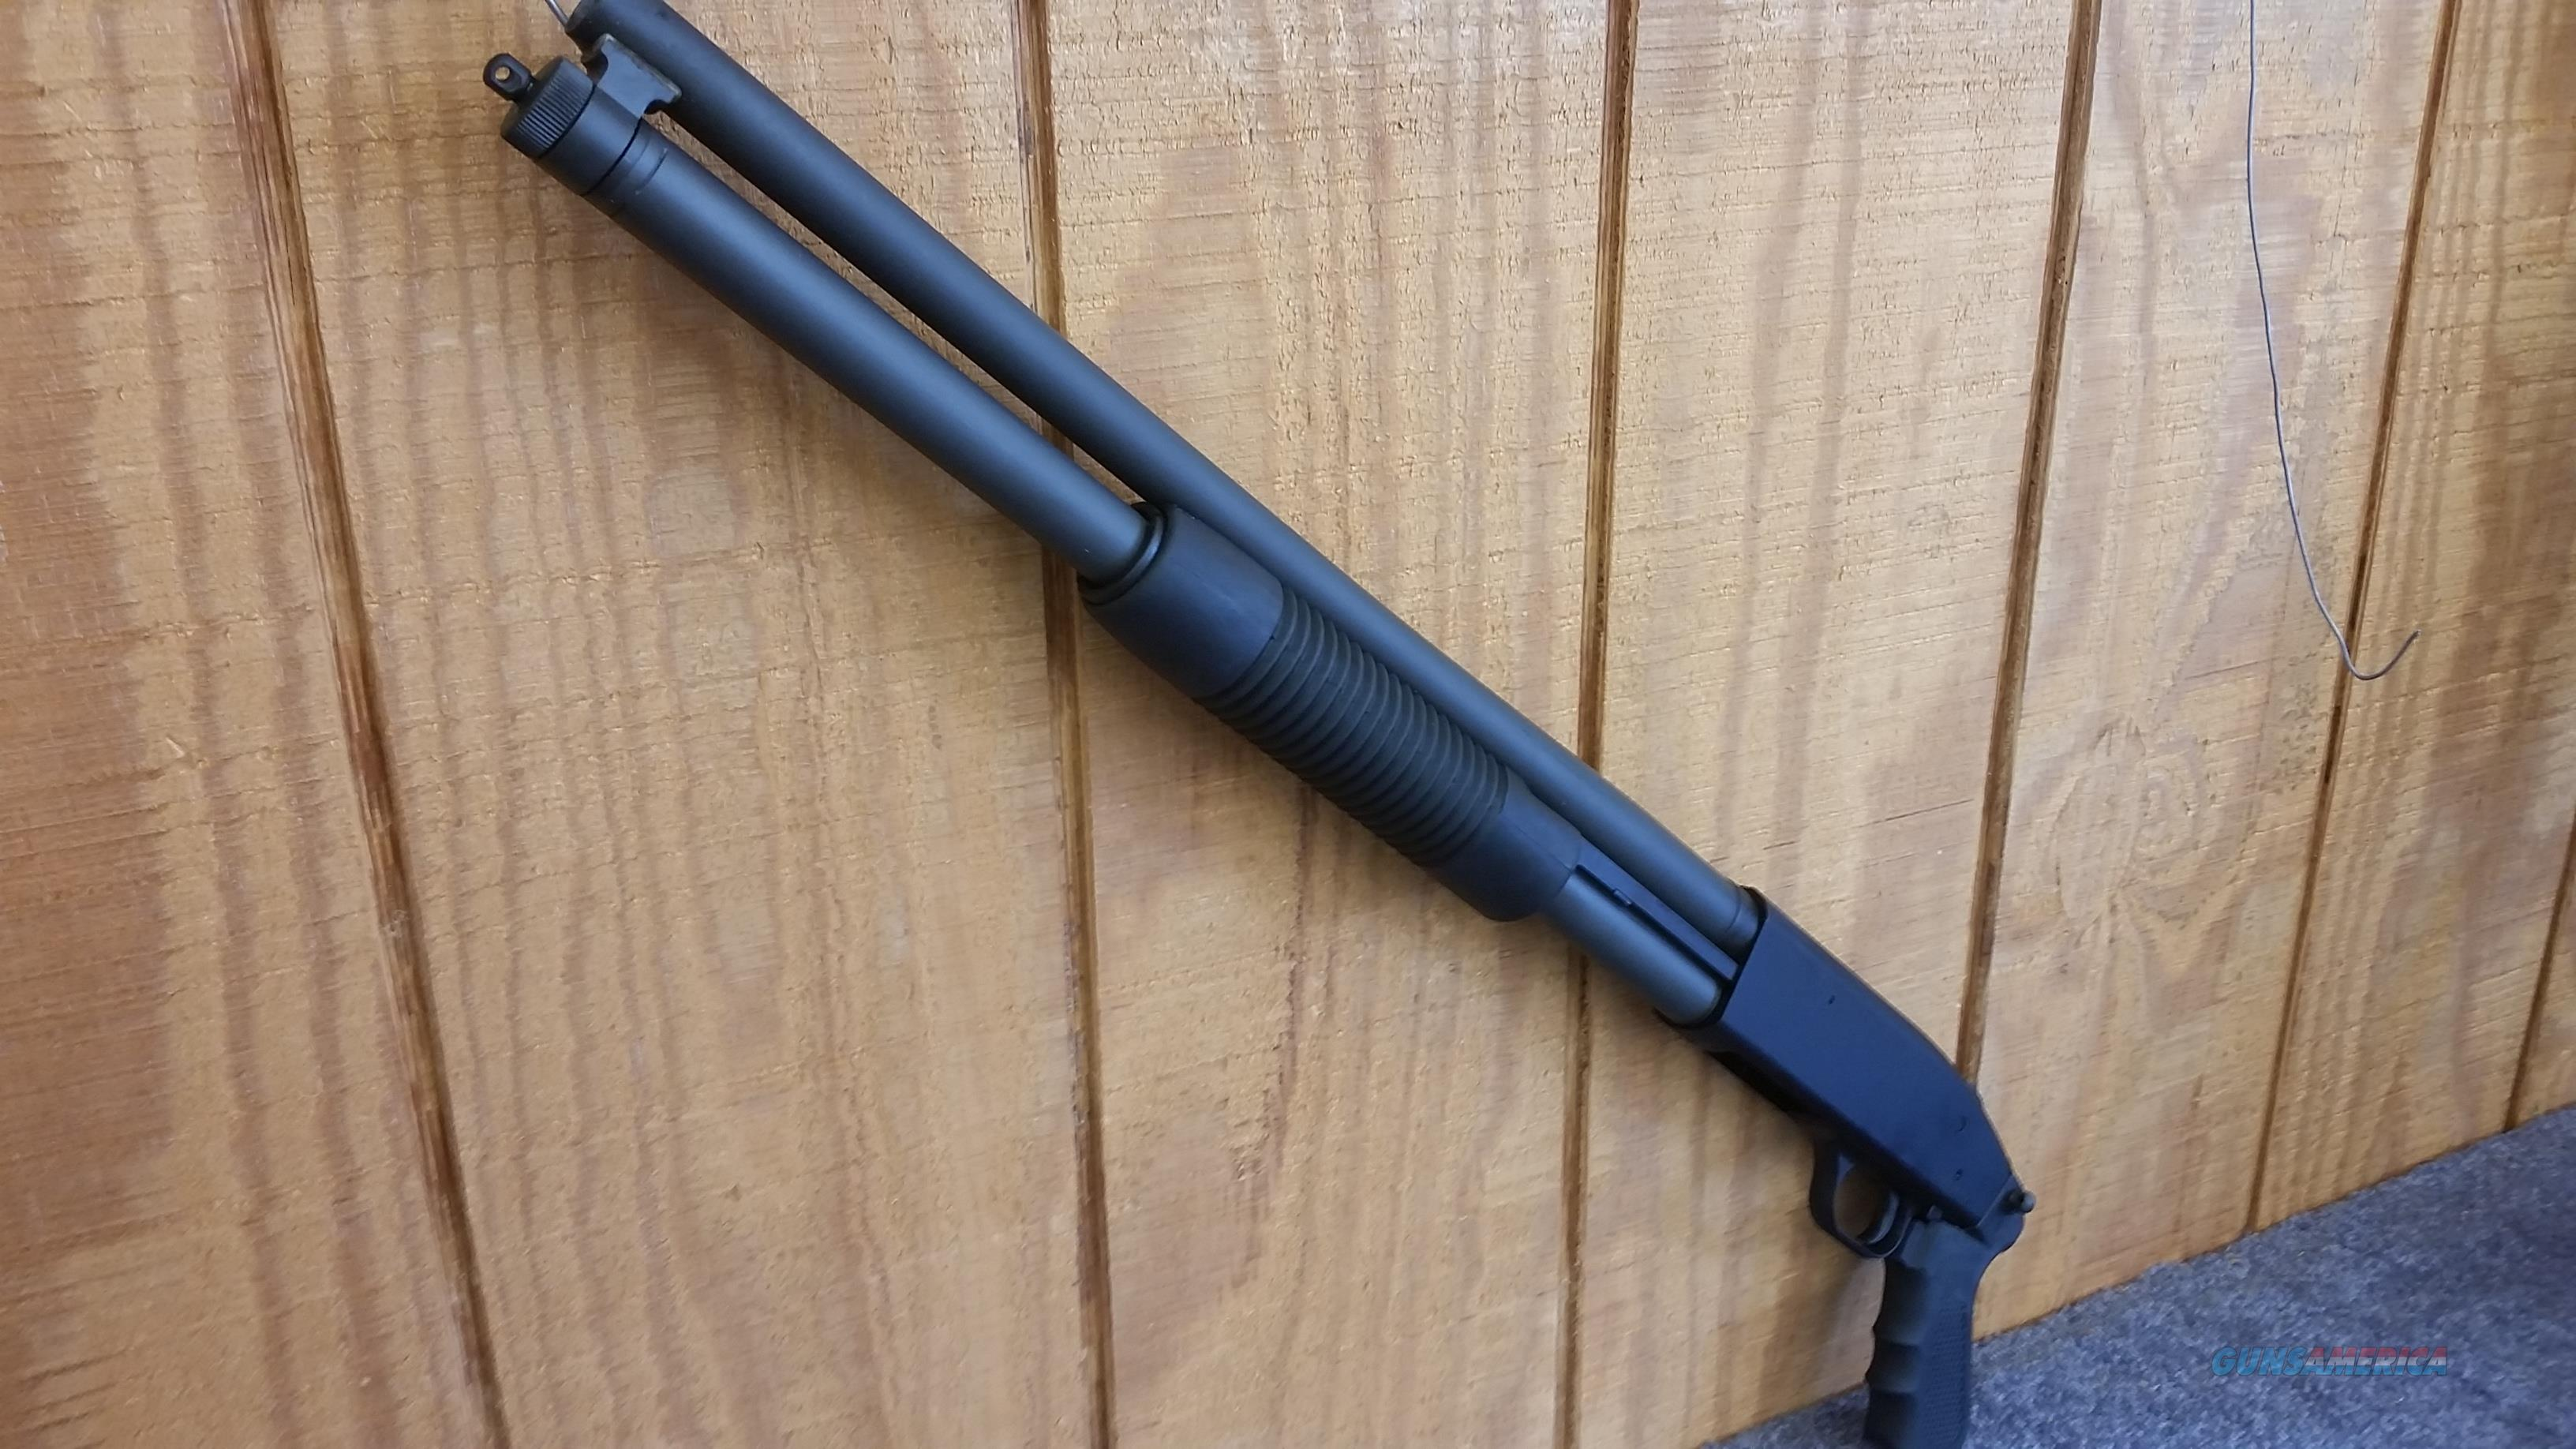 Mossberg 500 Persuader  8+1 Shot 12ga w/ both full and pistol grips  Guns > Shotguns > Mossberg Shotguns > Pump > Tactical